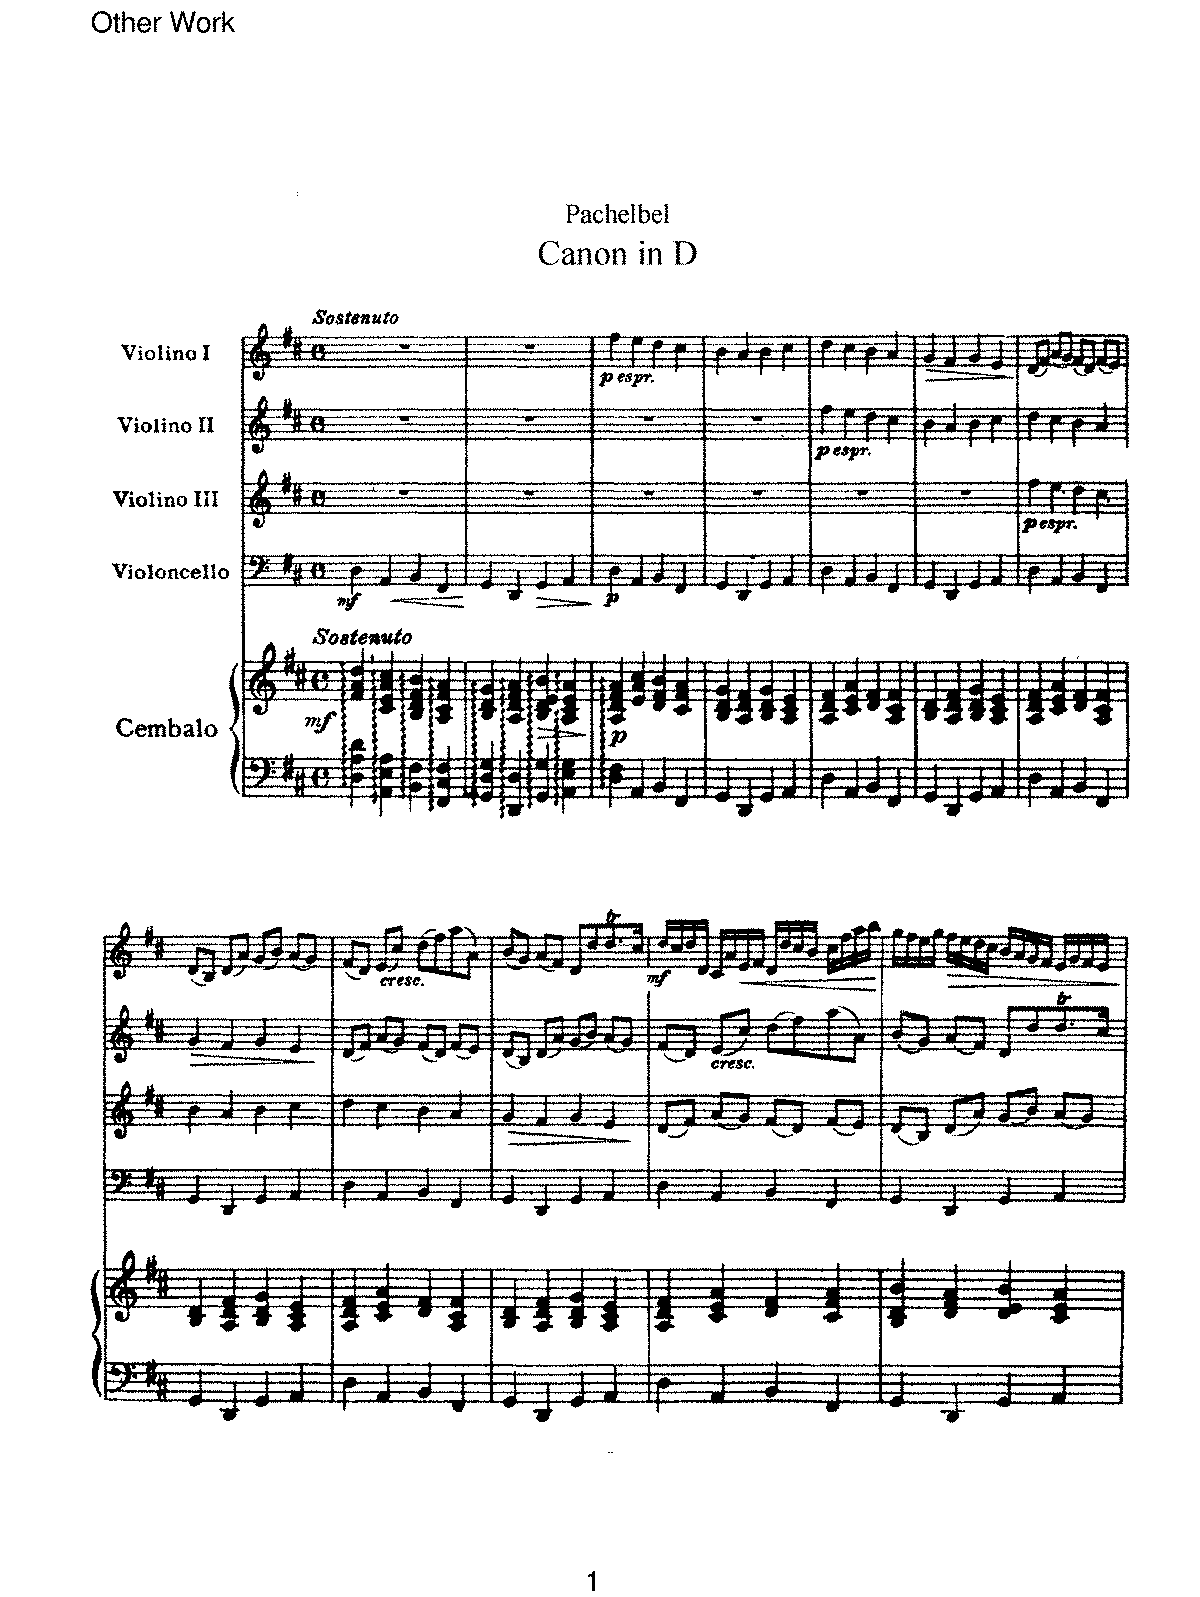 Canon and gigue in d major p37 pachelbel johann imslp canon hexwebz Image collections